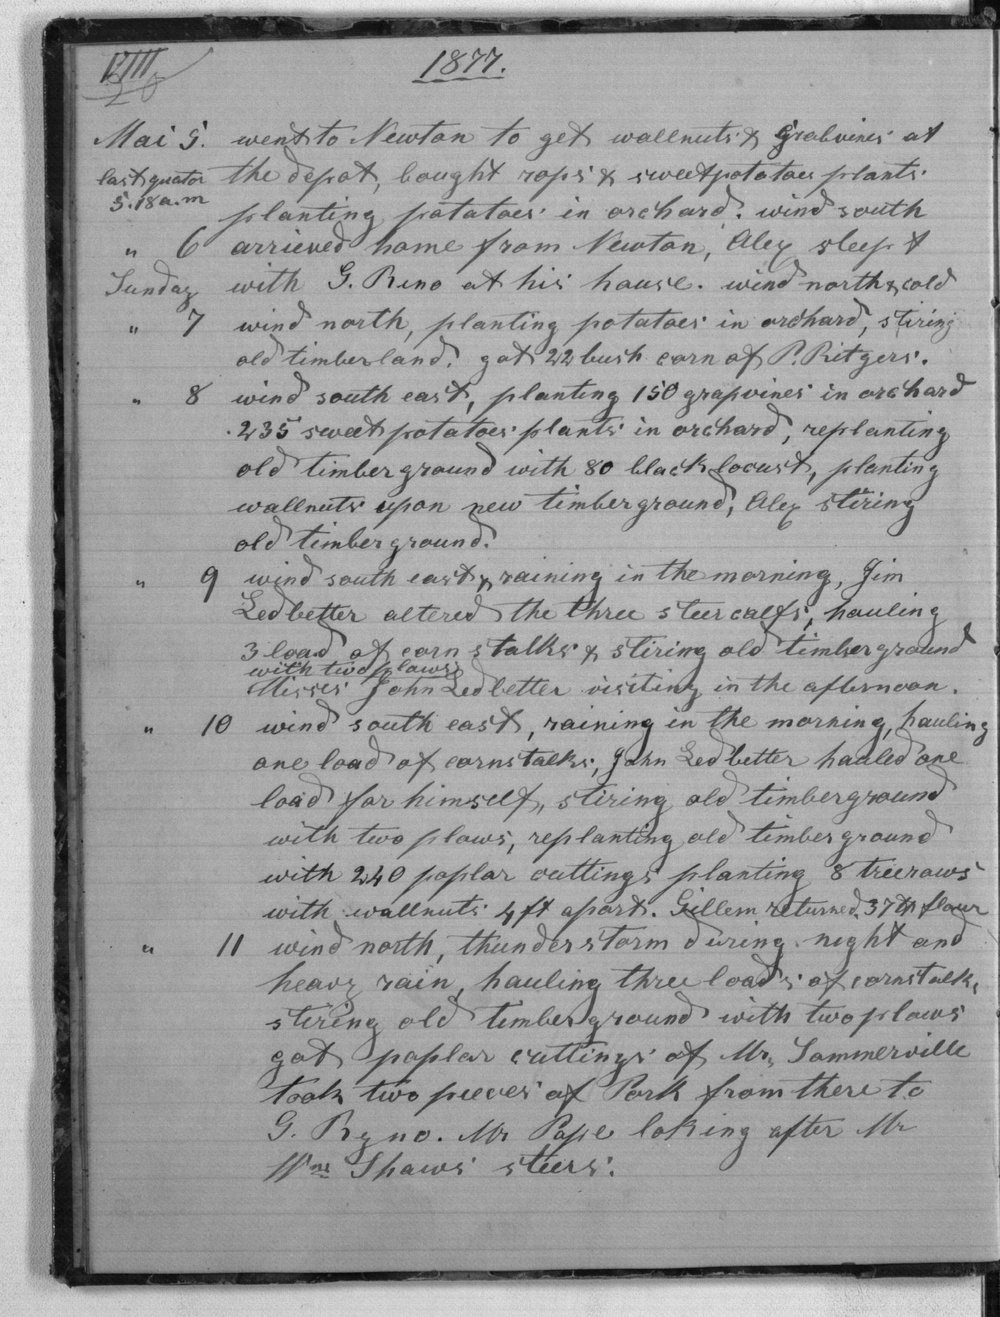 August Schulz diary - May 9, 1877